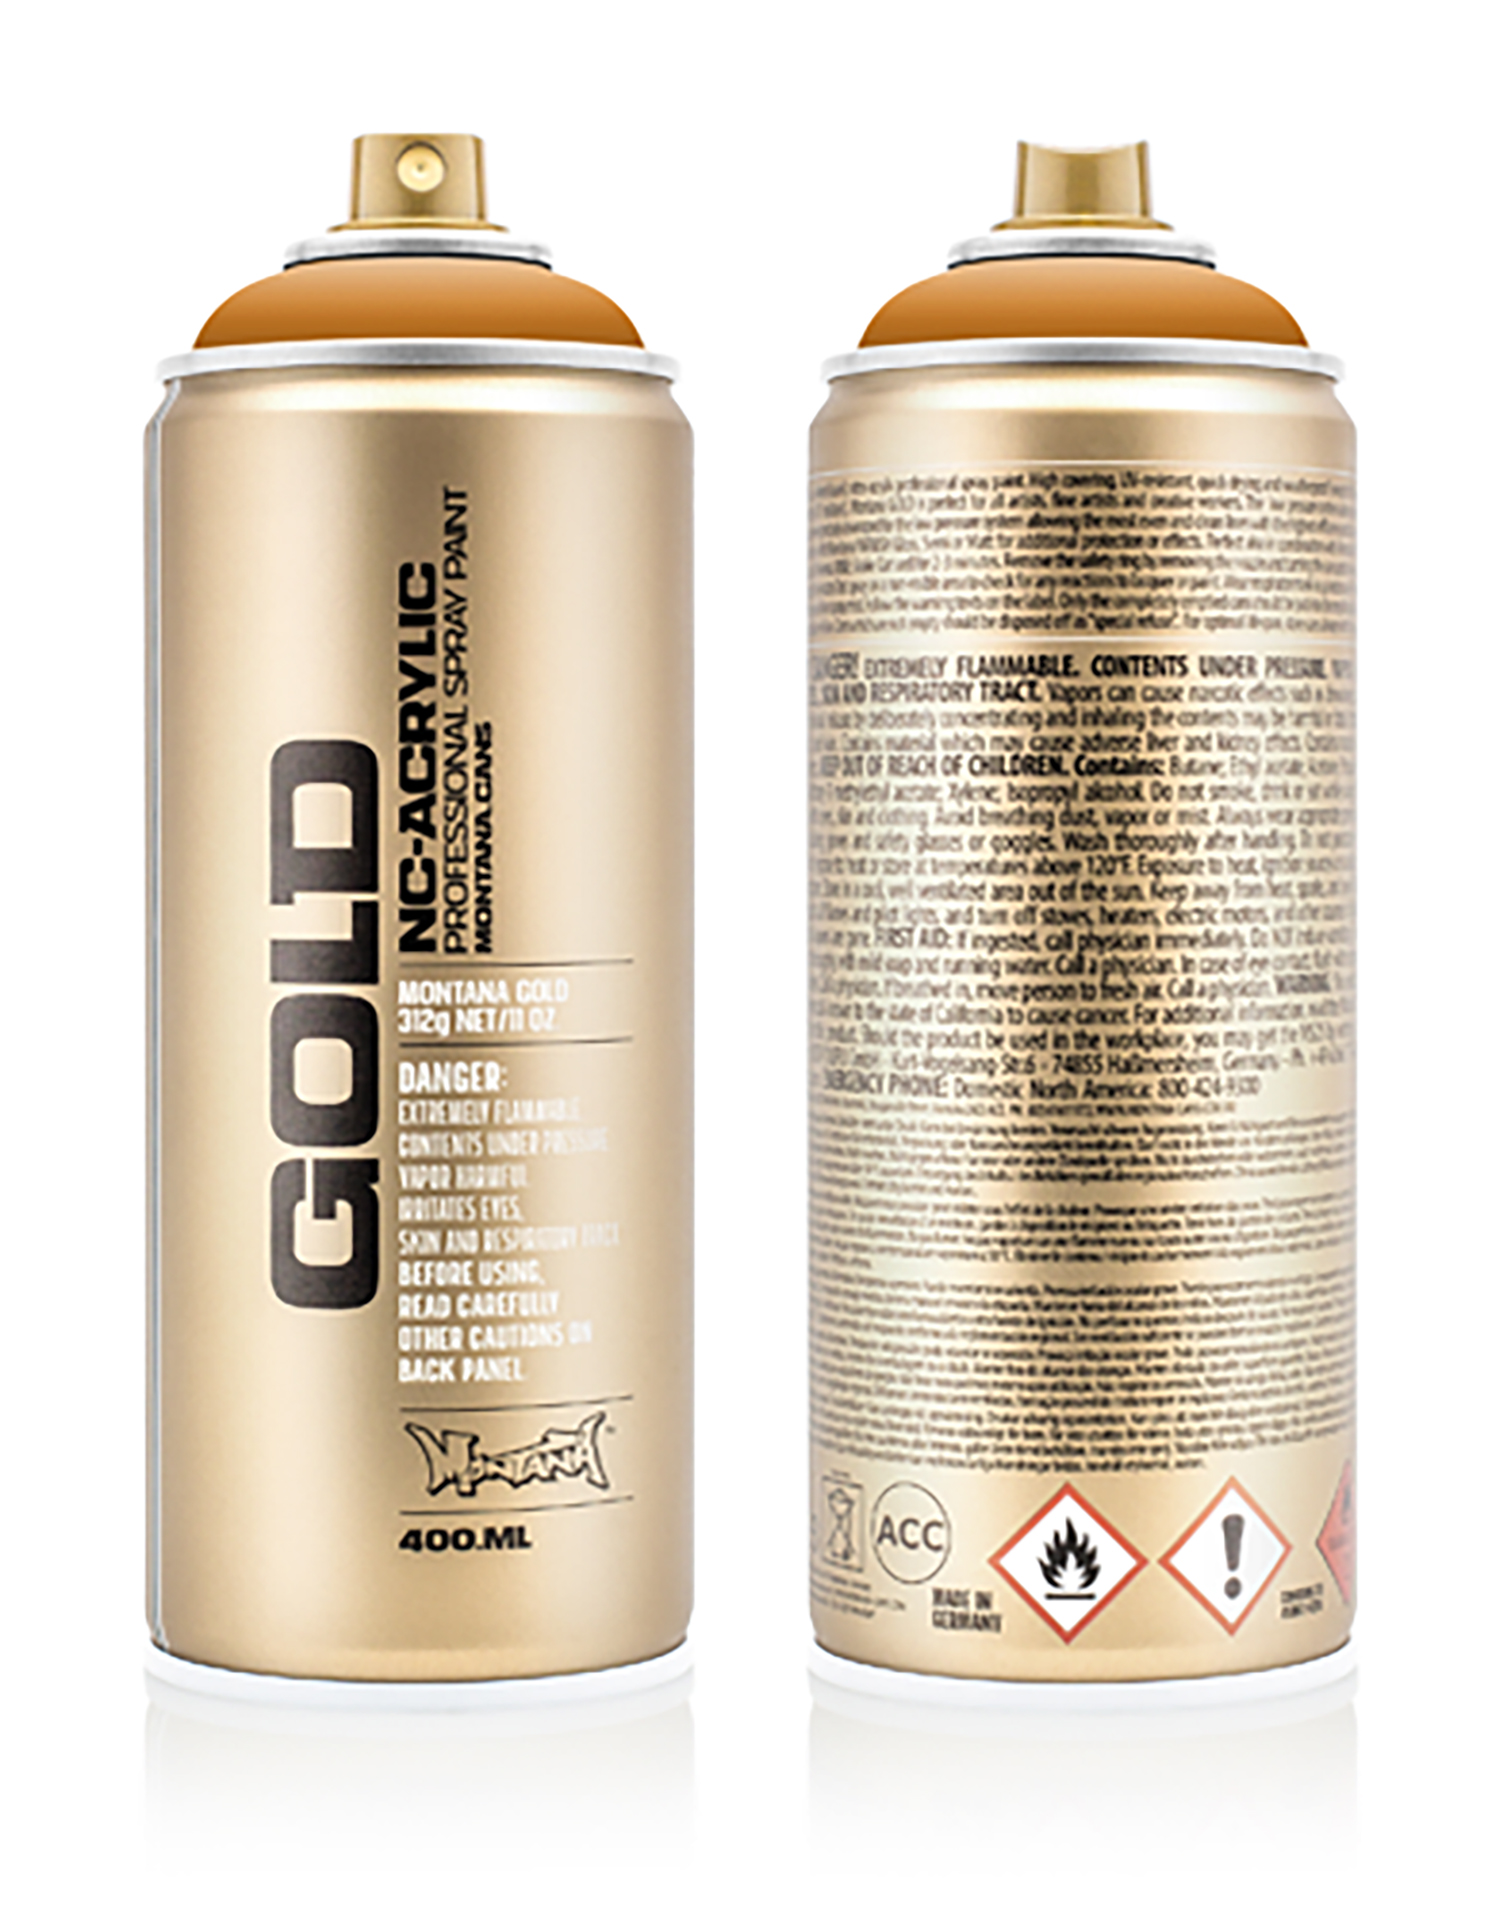 MONTANA-GOLD-SPRAY-400ML-G-1250